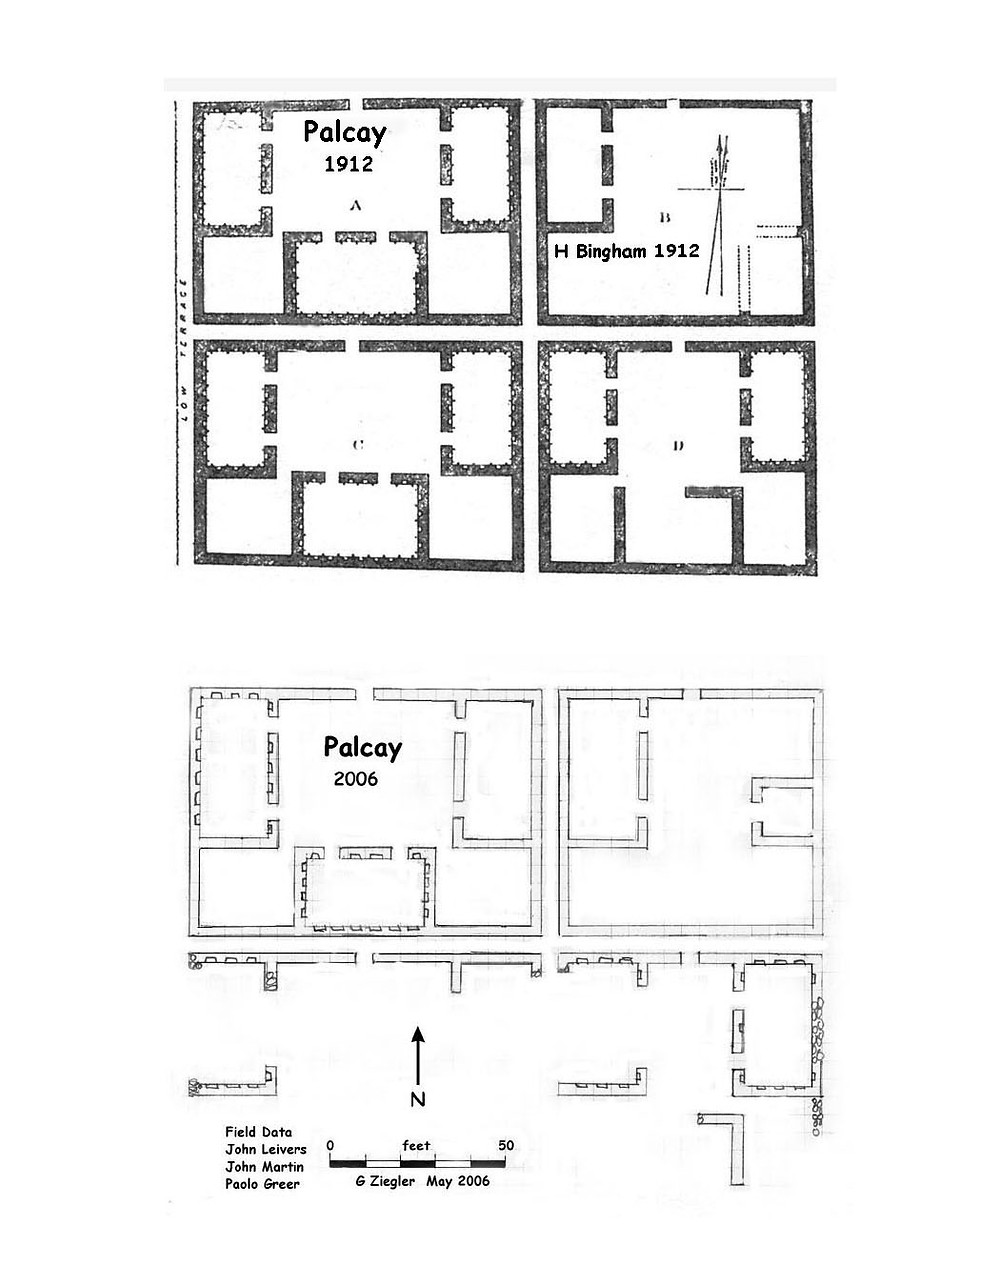 Our site plan compared with Hiram Bingham's 1912 plan